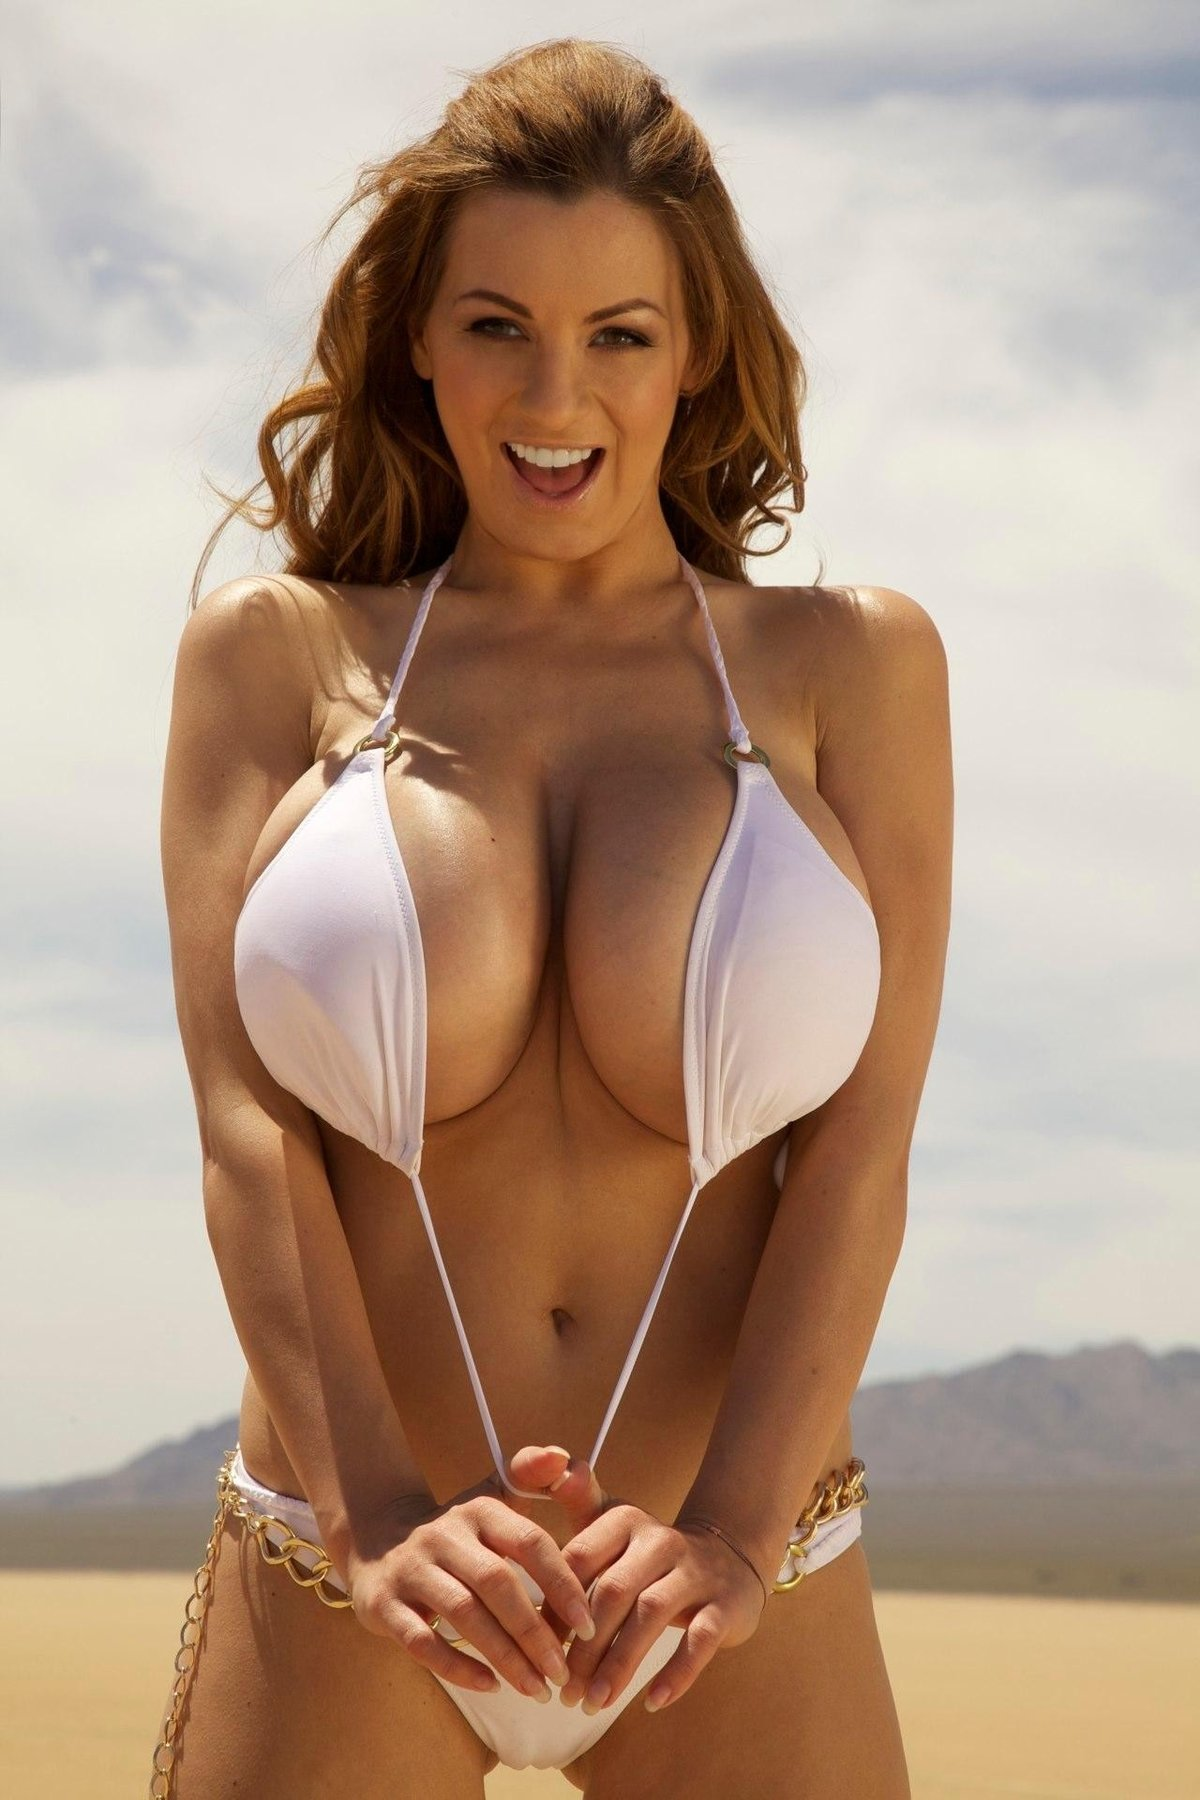 Big breasts girls 3